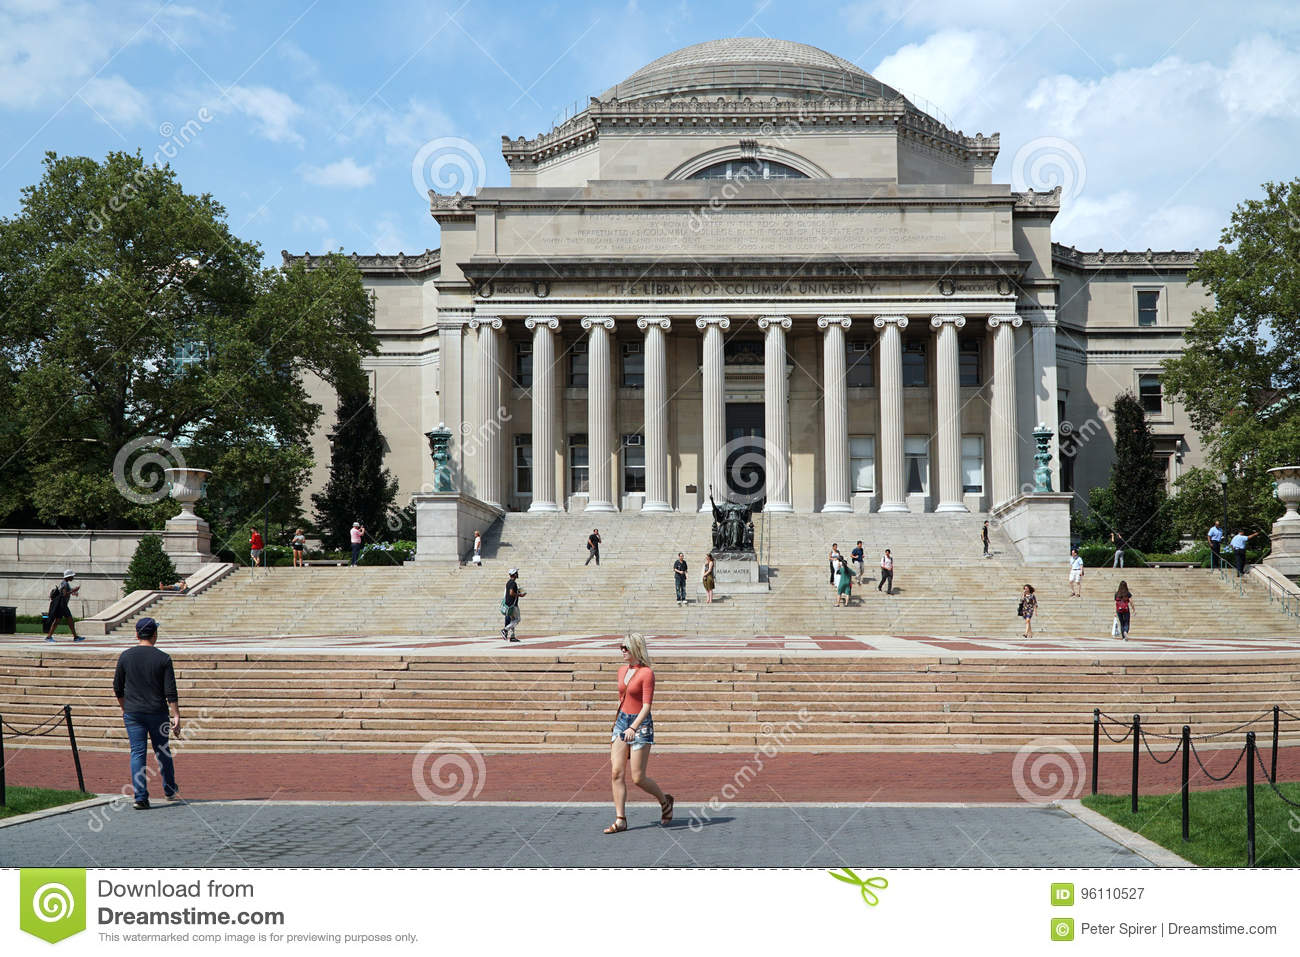 Ivy League dating